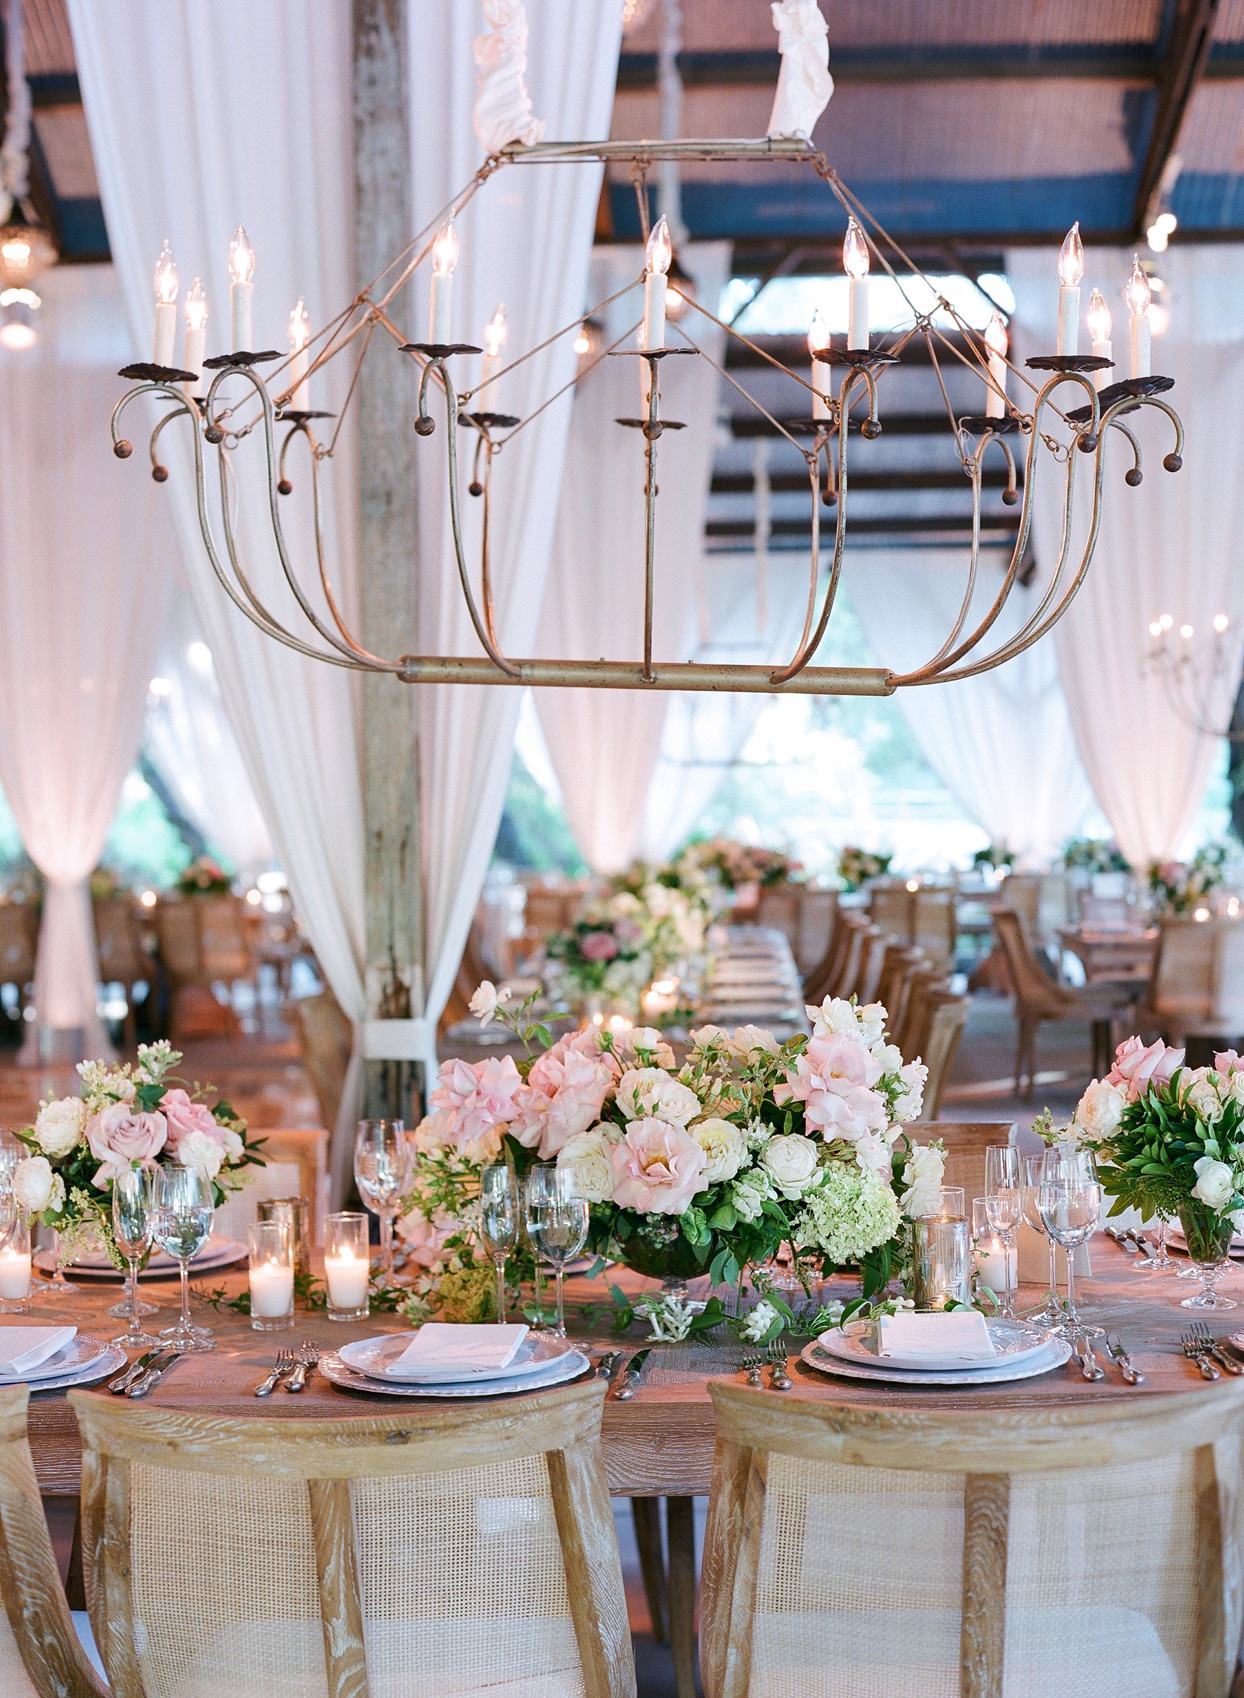 pink and green floral centerpieces and glass holders with candles reception table decor